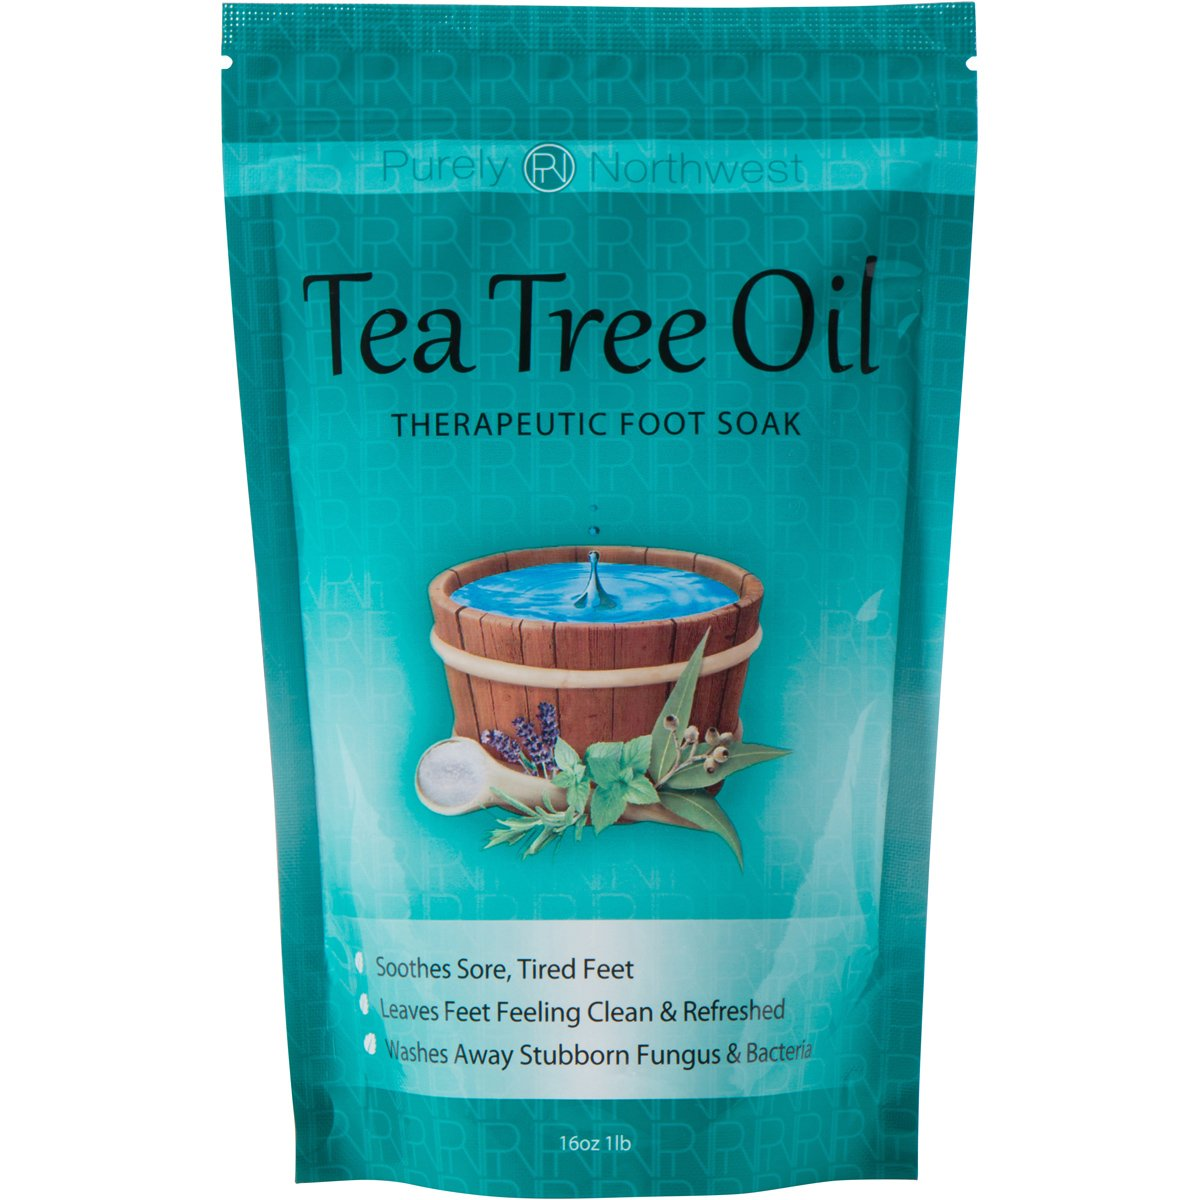 Tea Tree Oil Foot Soak With Epsom Salt, Refreshes Feet and Toenails, Leaving Feet Feeling Soft, Clean and Healthy – Helps Soak Away Tired Feet - 16 oz